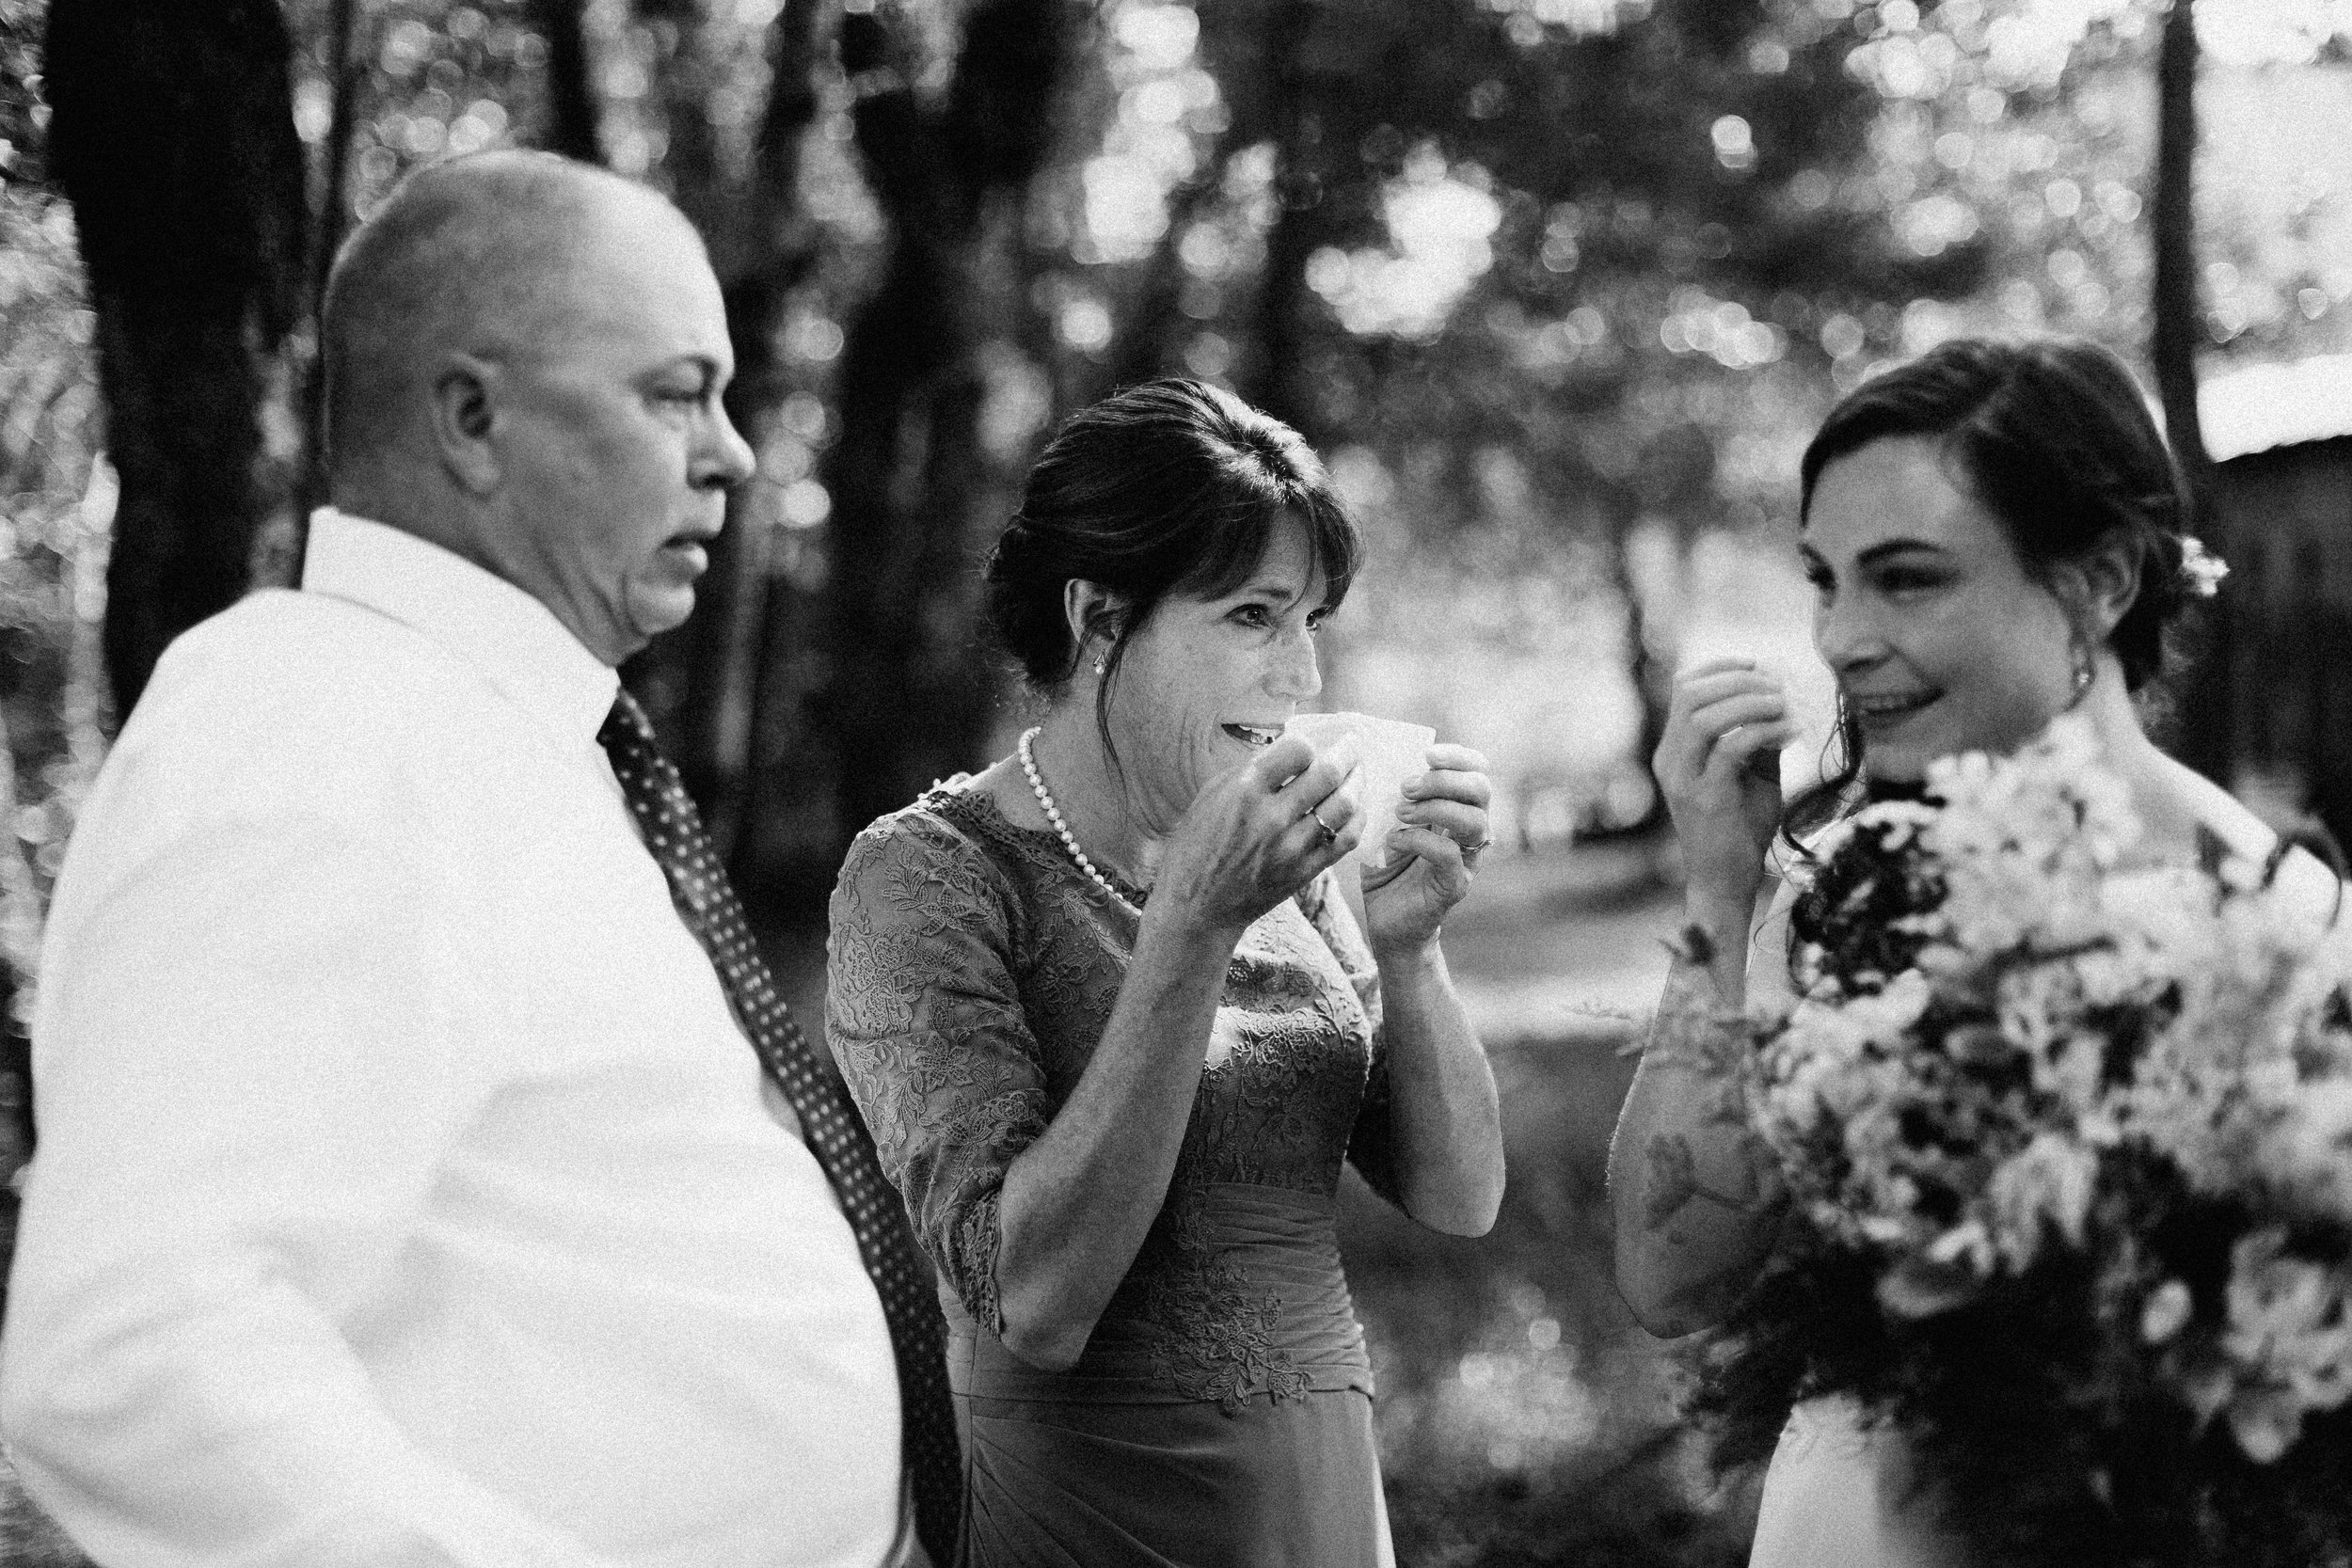 cleveland_georgia_mountain_laurel_farm_natural_classic_timeless_documentary_candid_wedding_emotional_photojournalism_river_west_1281.jpg